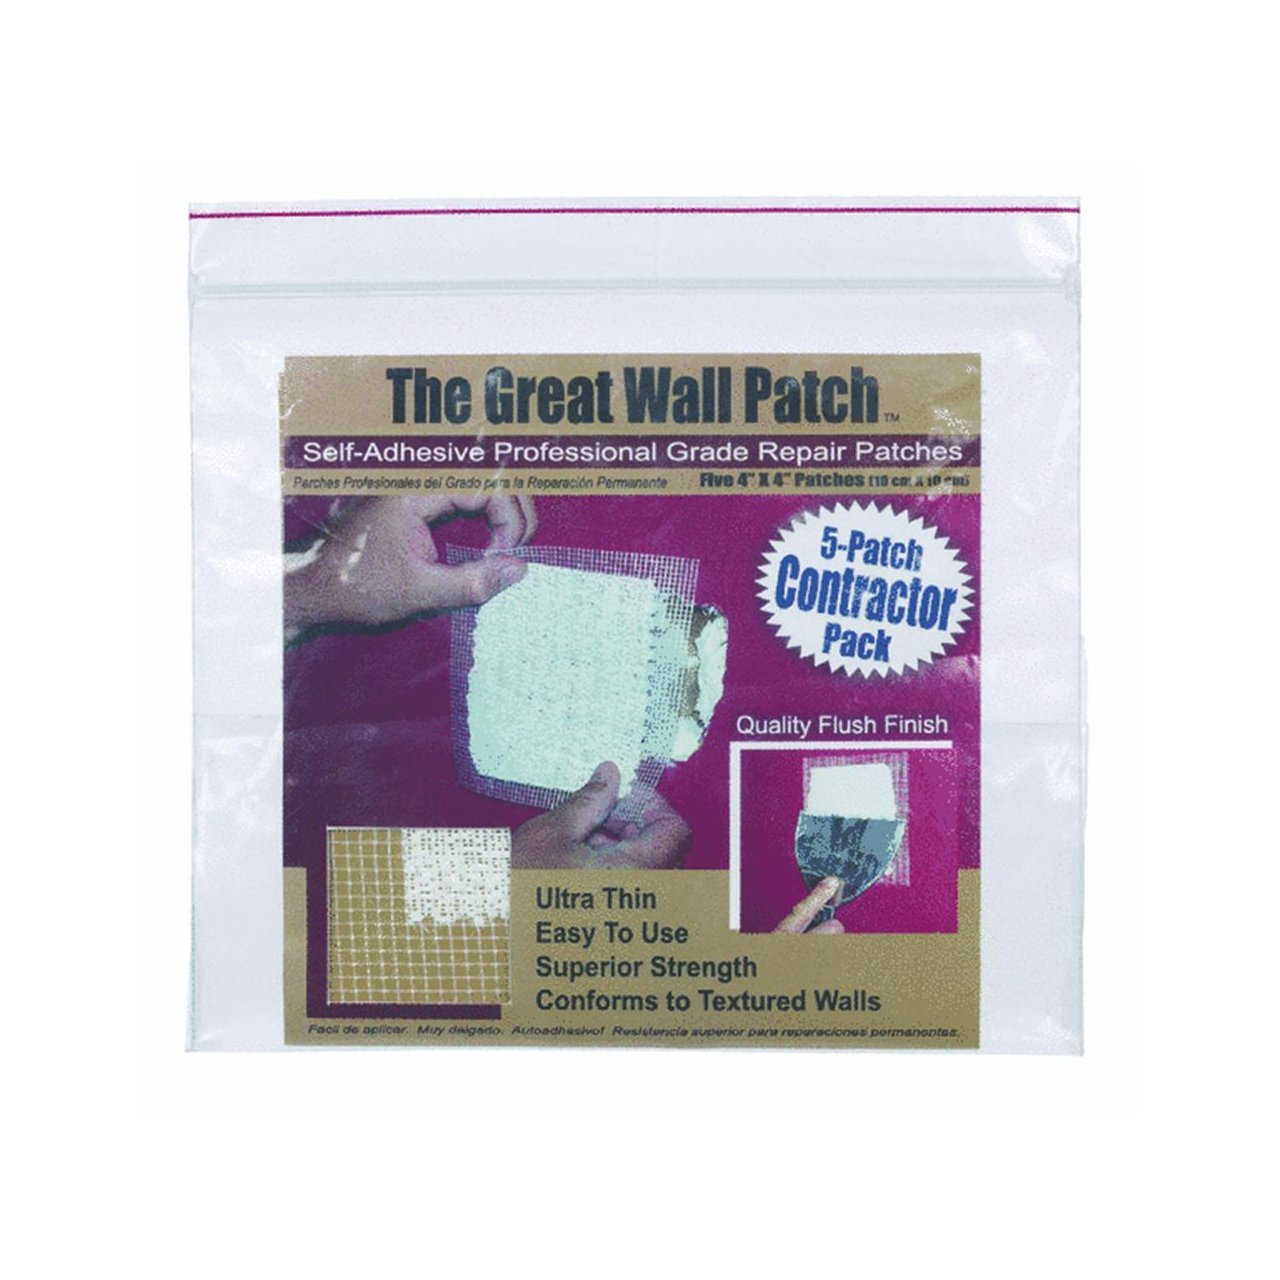 "The Great Wall Patch GWPC4P 4"" Wall Patch 5 Count"